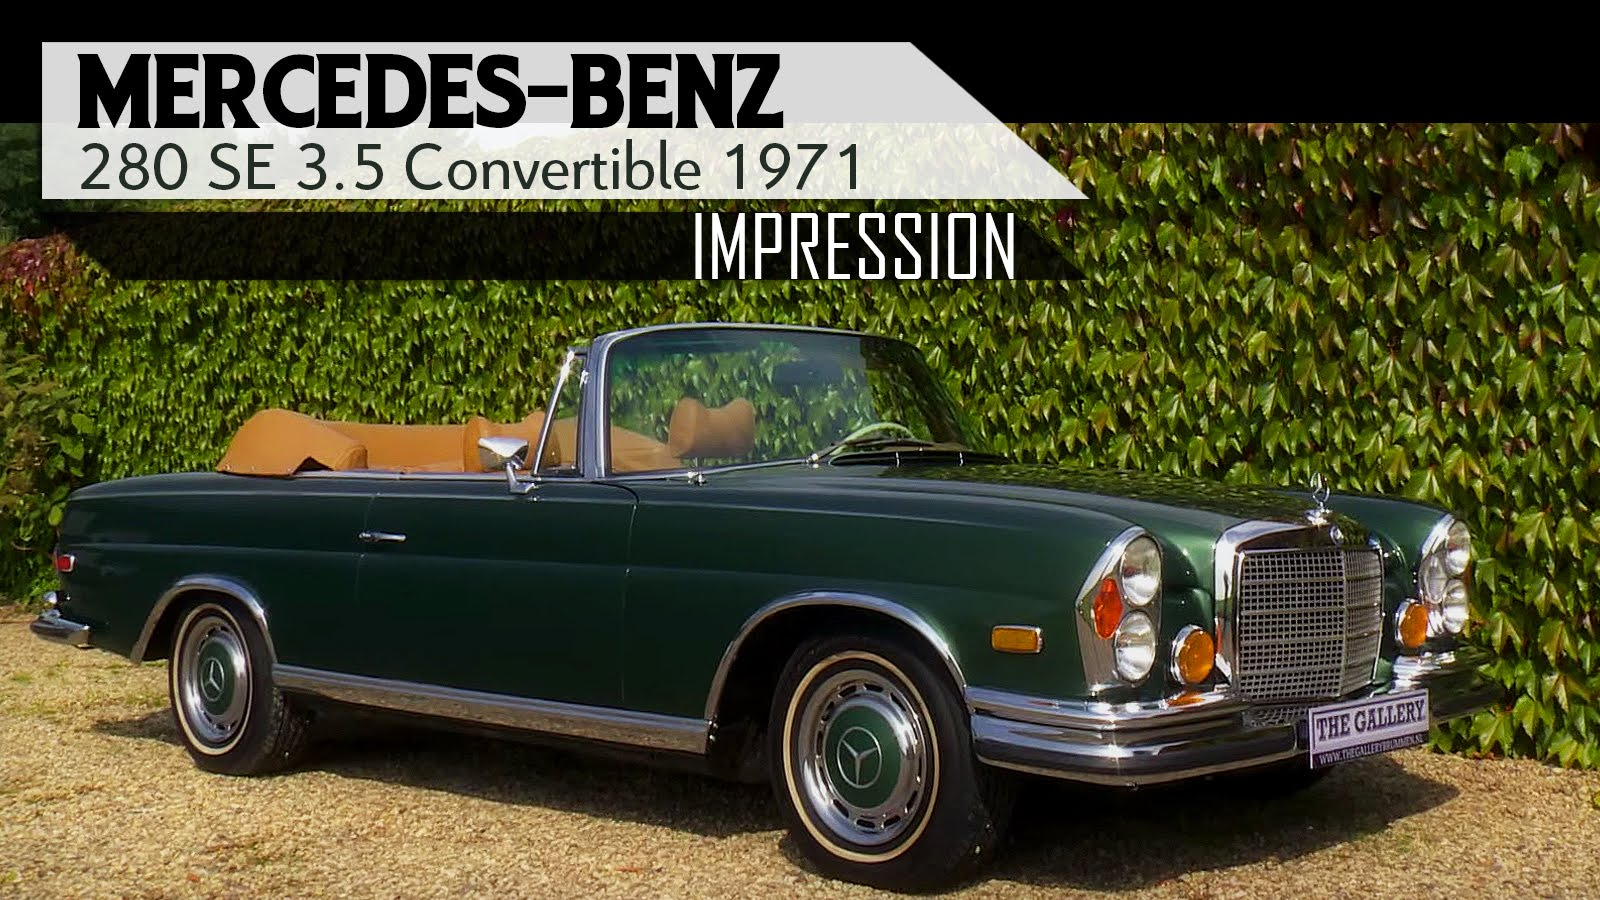 Mercedes-Benz W111 1959 - 1971 Coupe #6